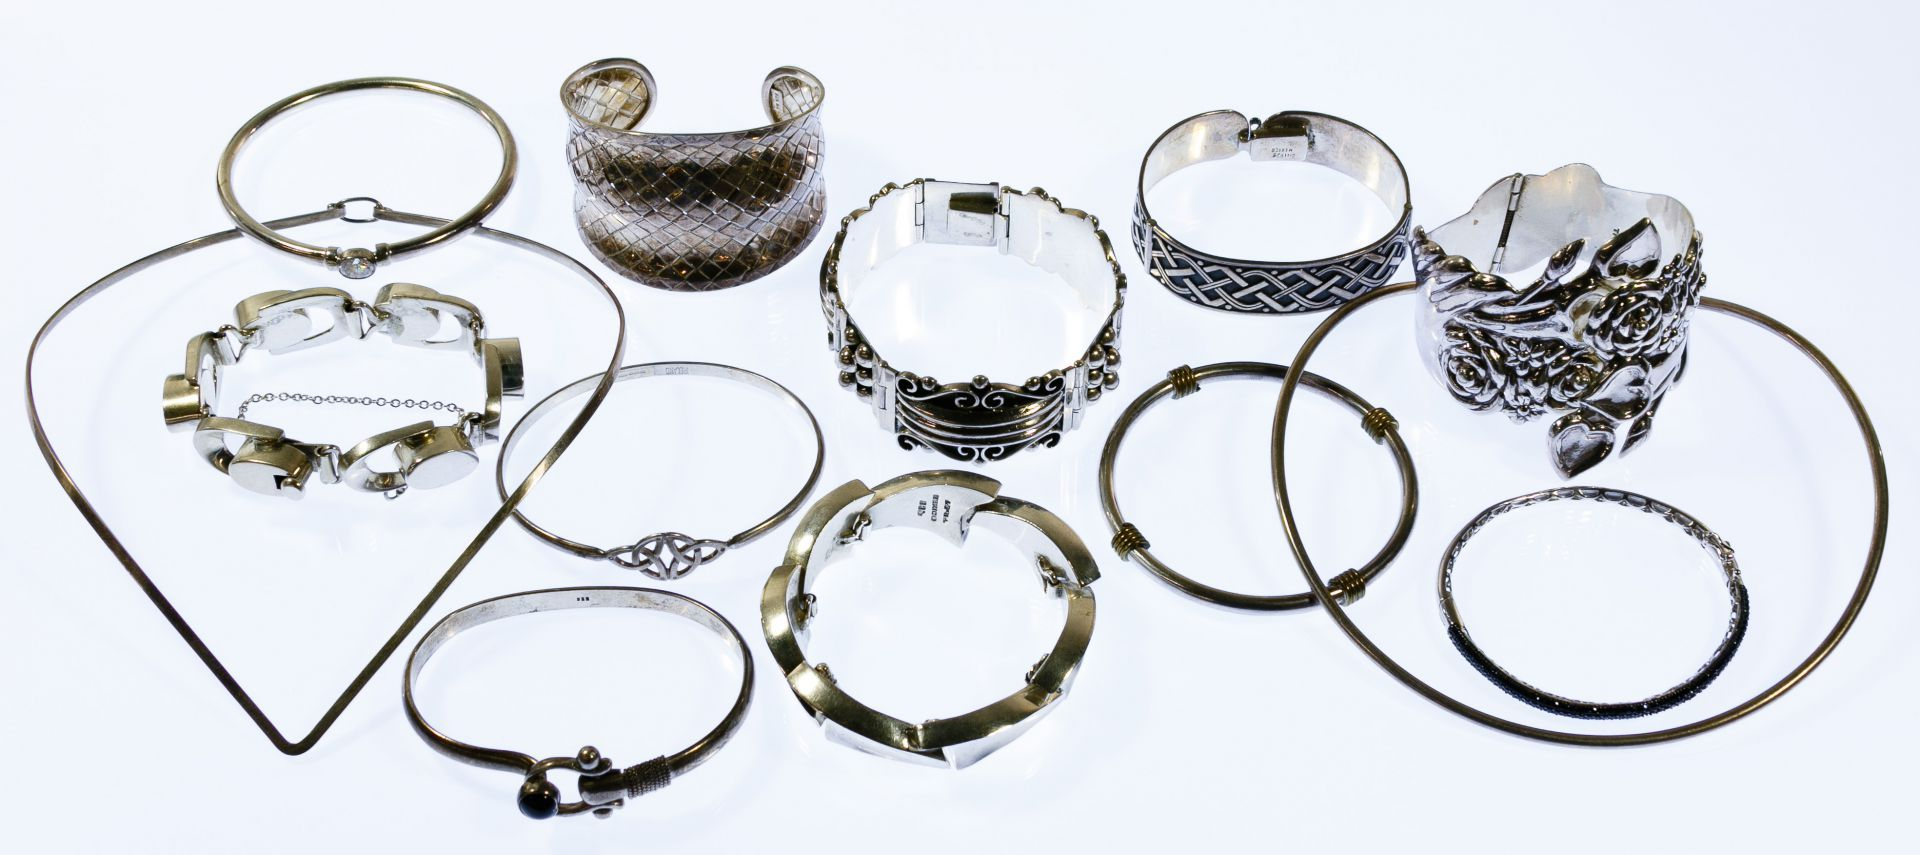 f523d57a5 Lot 364: Sterling Silver Jewelry Assortment; Including two necklaces and  eleven bracelets, some adorned; most marked